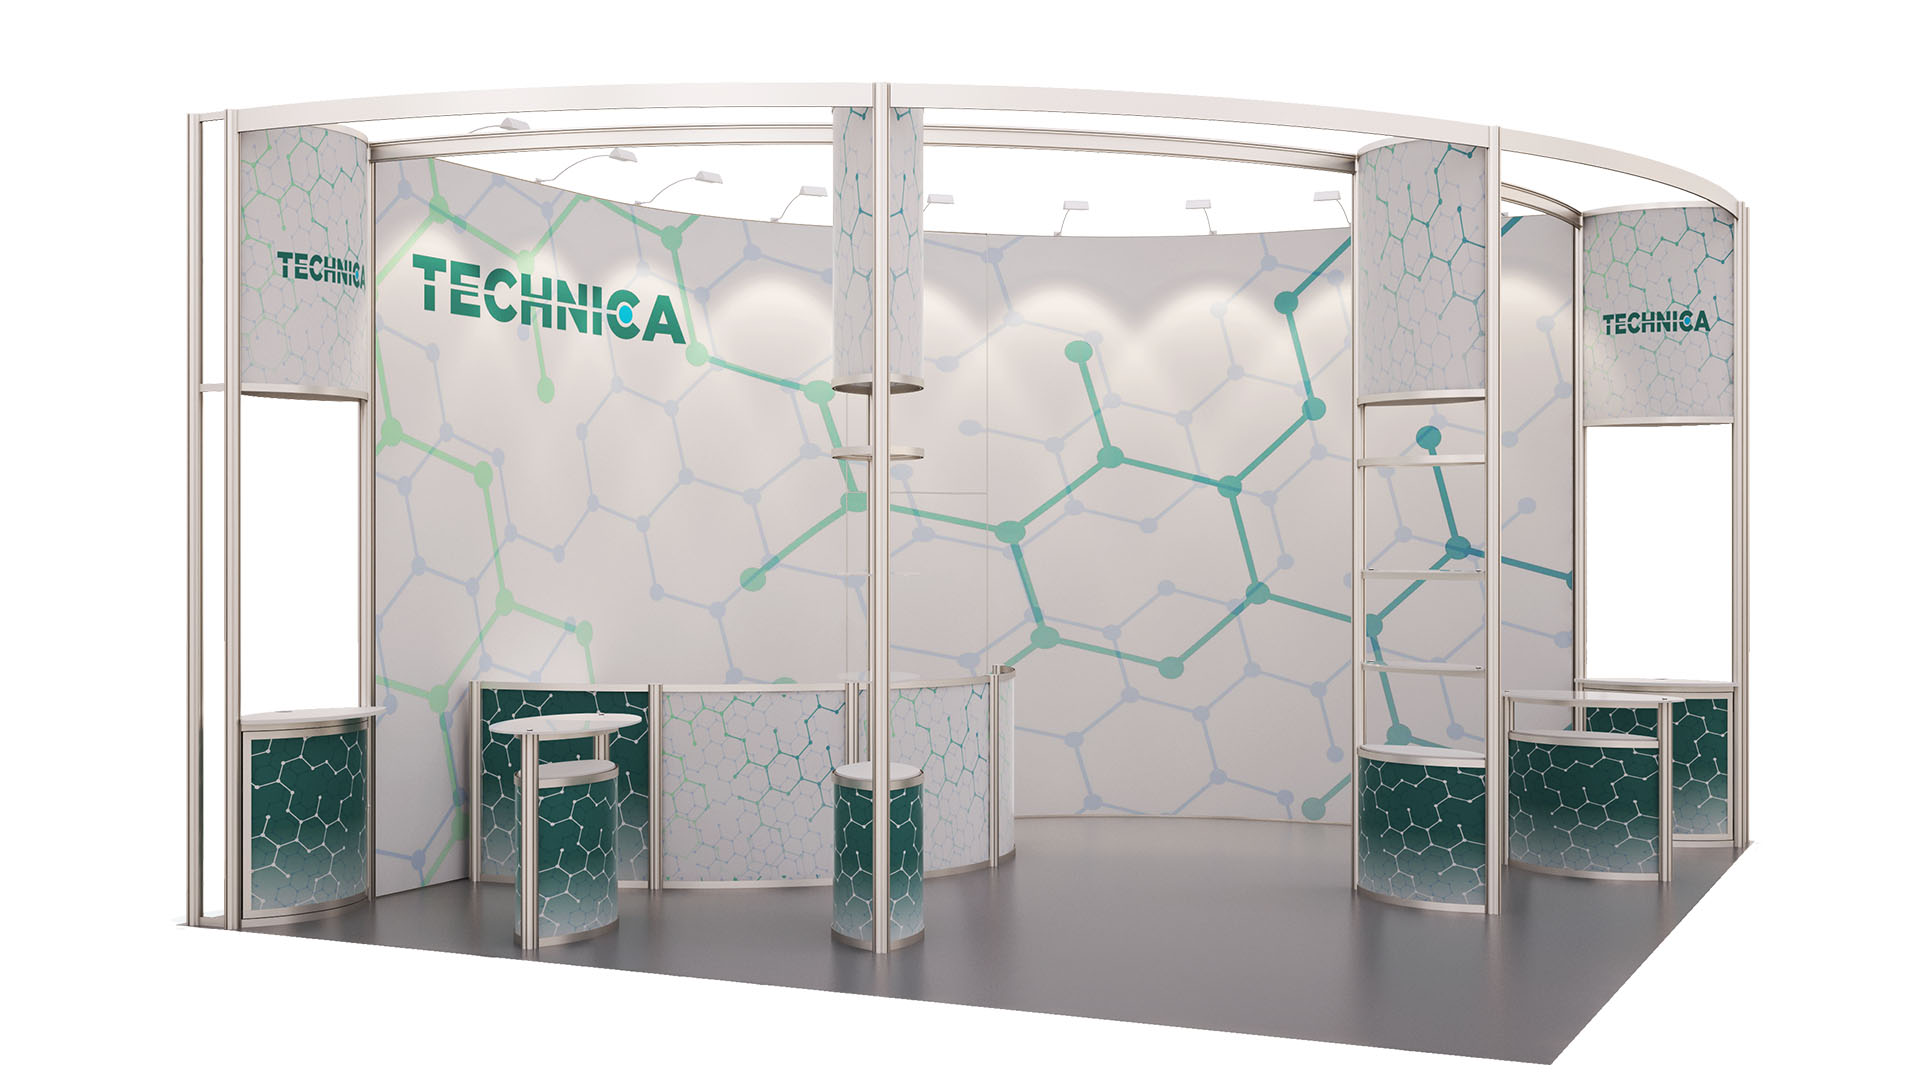 Exhibition-Stands-Design_0008_Stand v2A.jpg